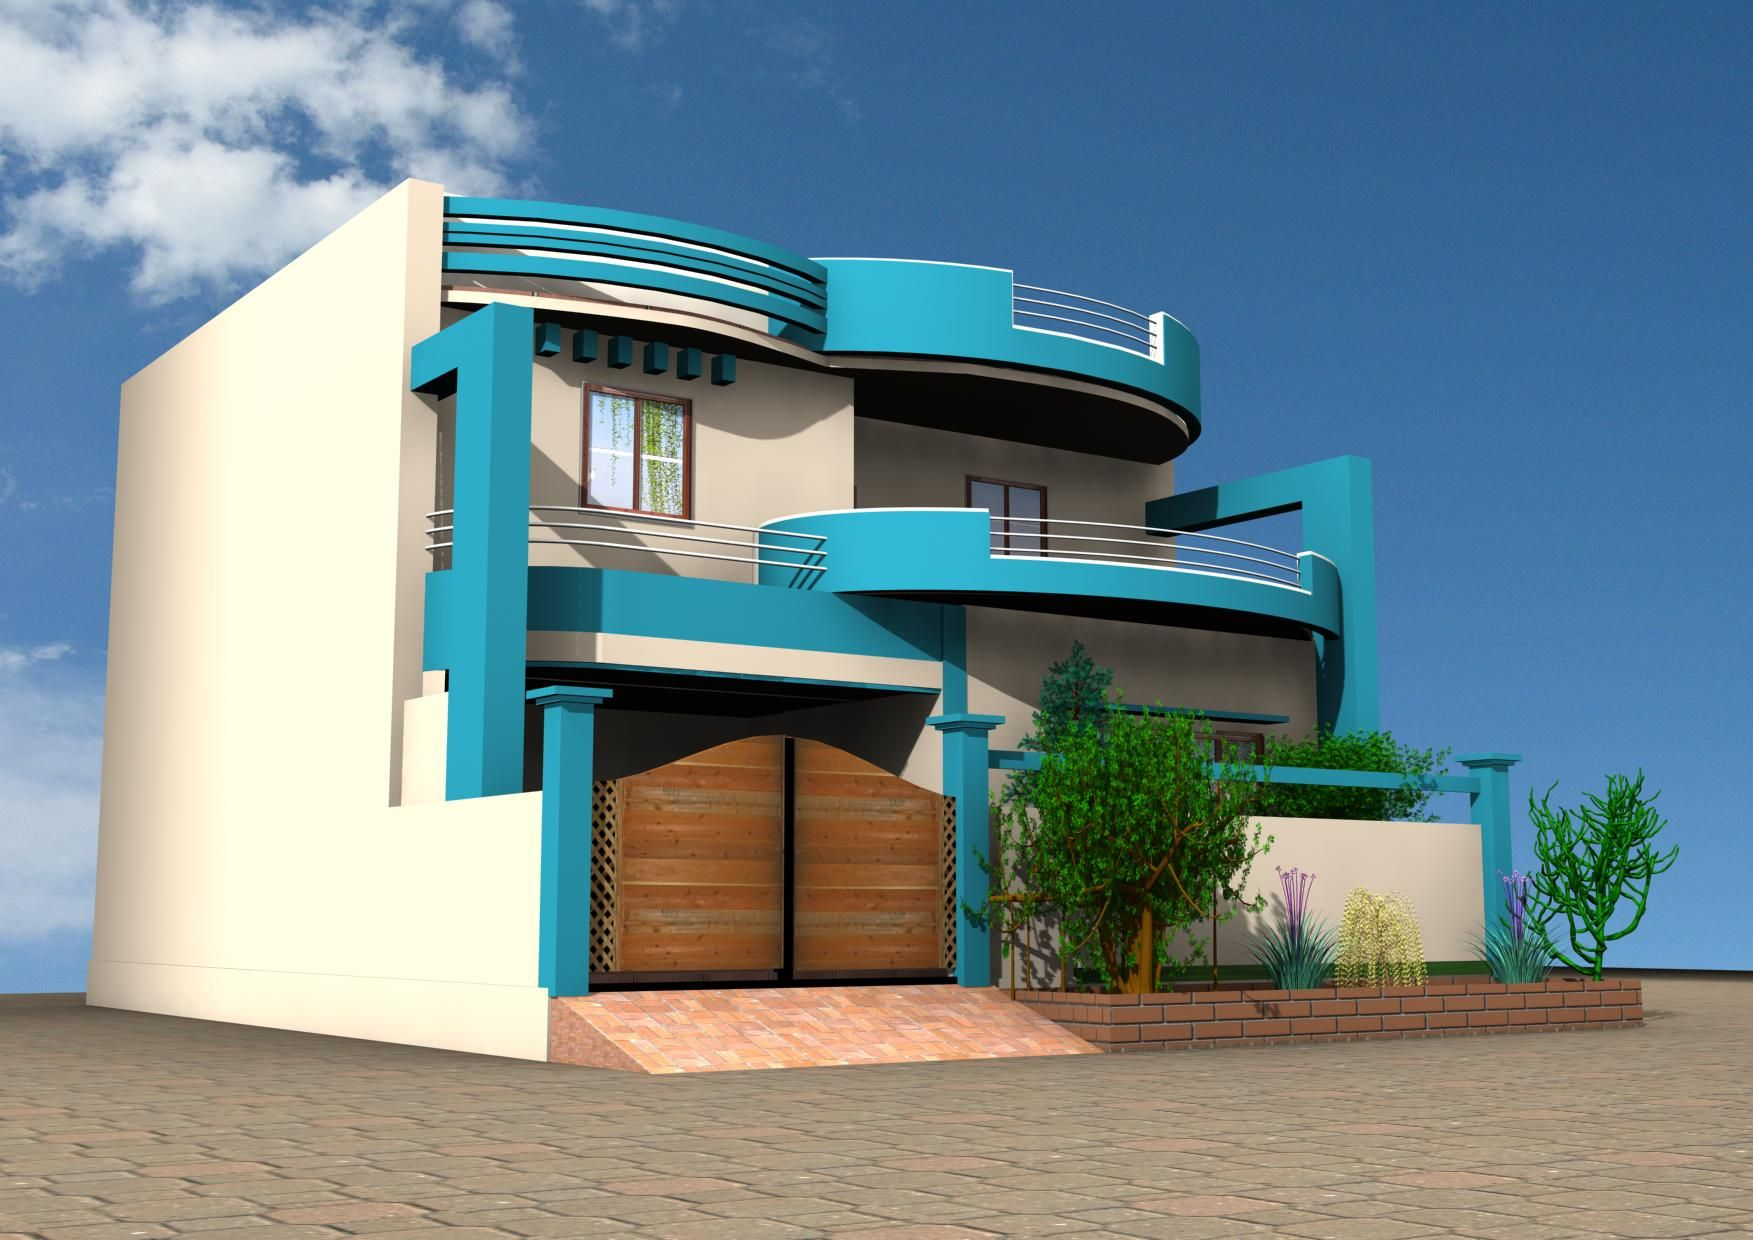 3d home design images hd 1080p 3d building design